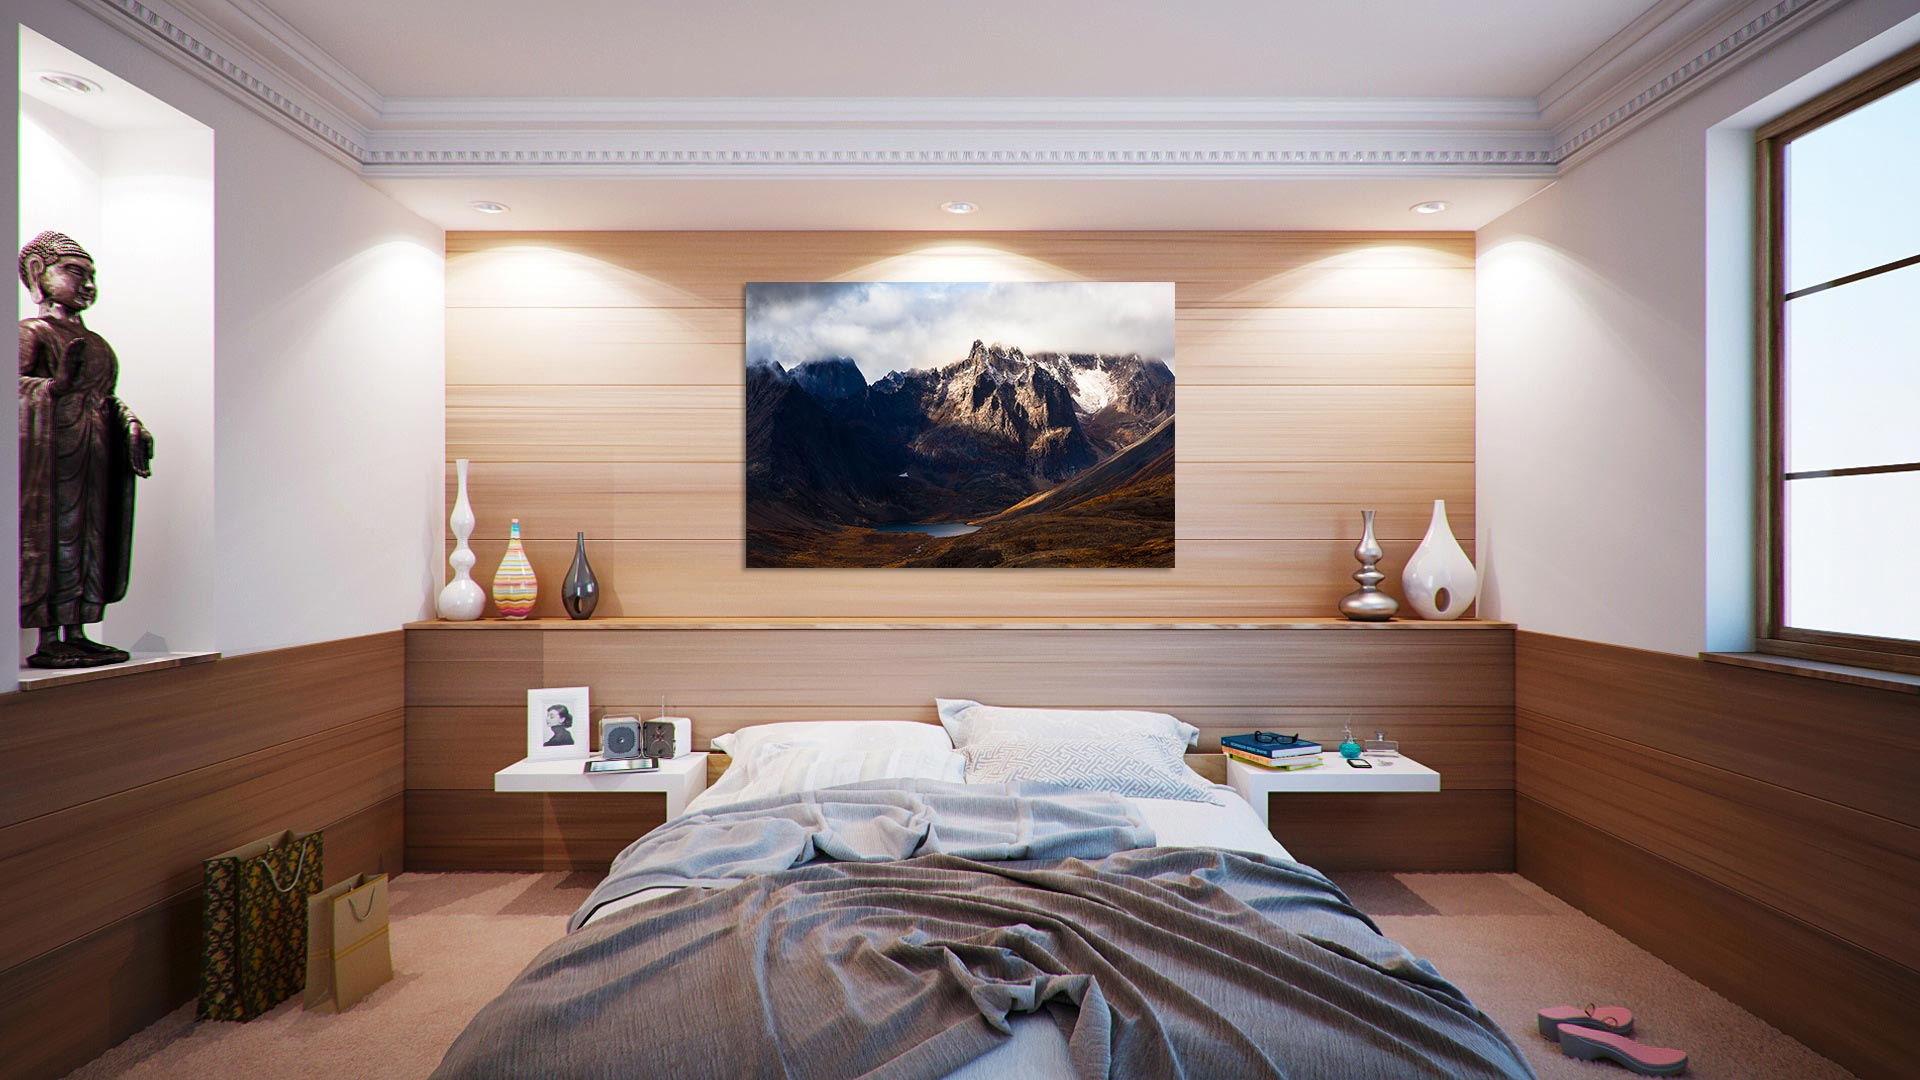 Print preview in bedroom